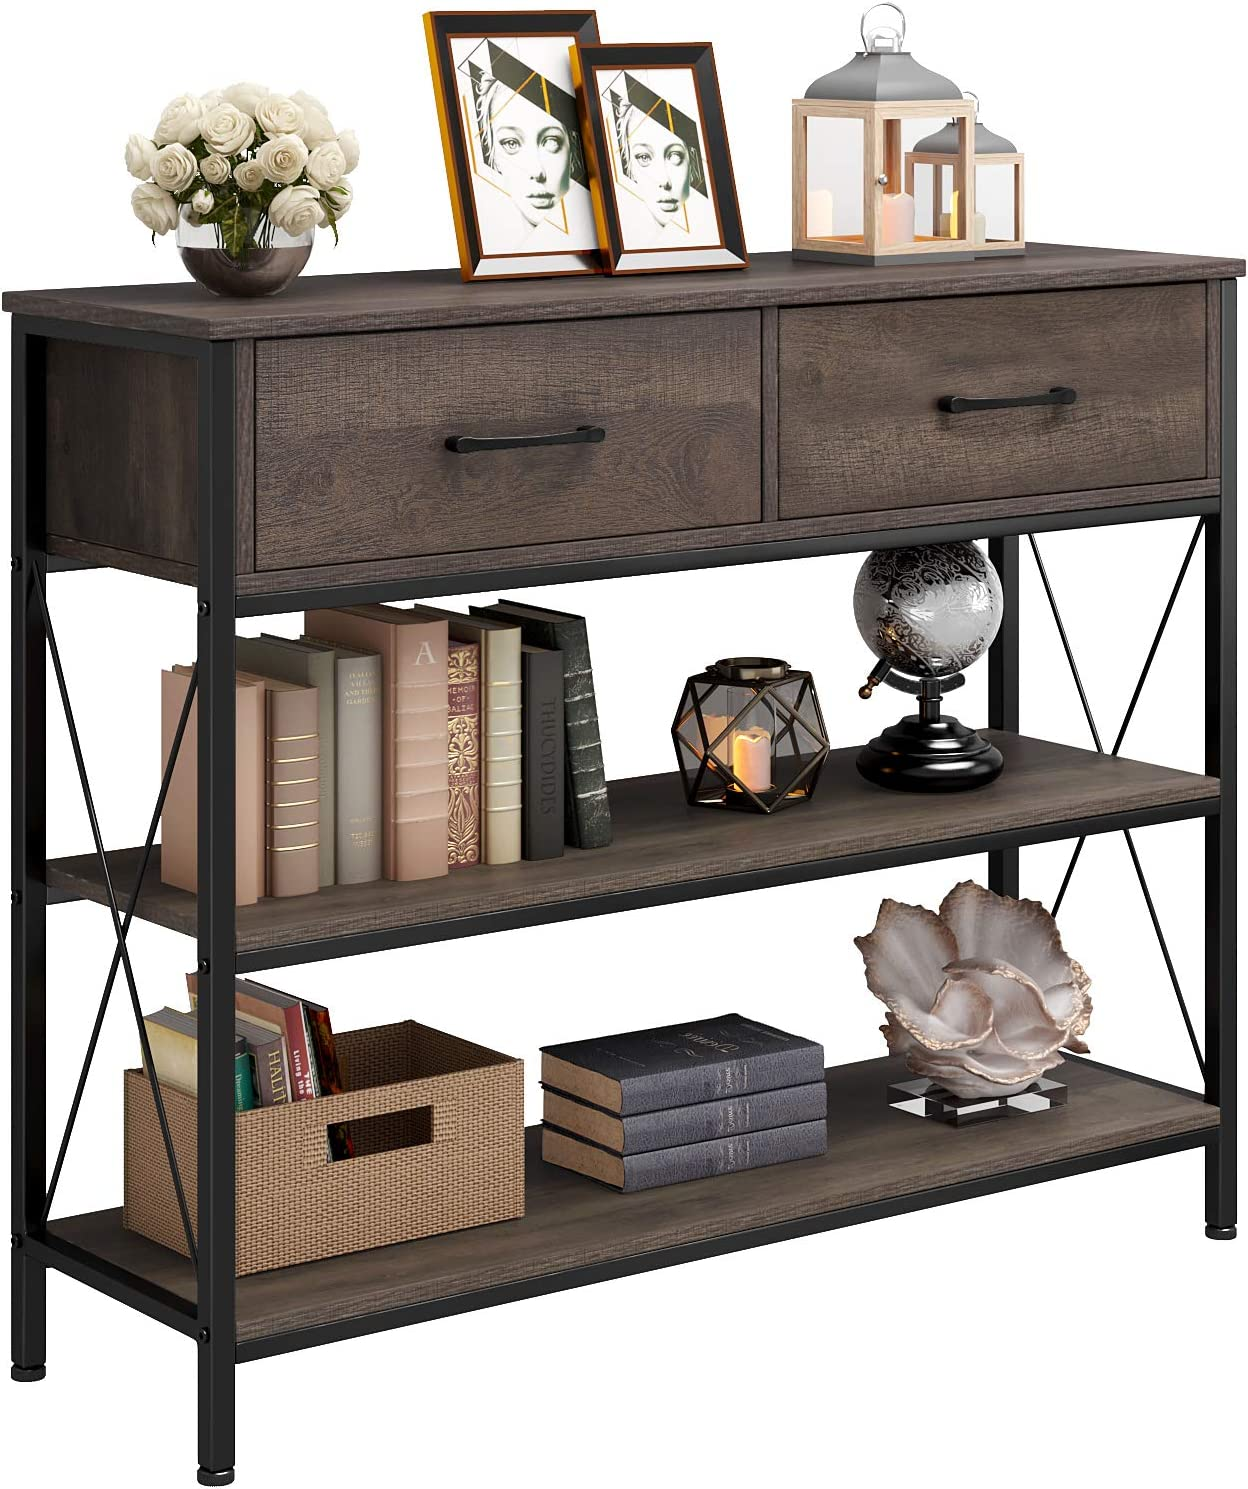 HOMECHO Console Table with Drawers, Tall Entryway Table with Storage, Narrow Sofa Hallway Table for Bedroom Living Room, Metal Frame, Dark Brown